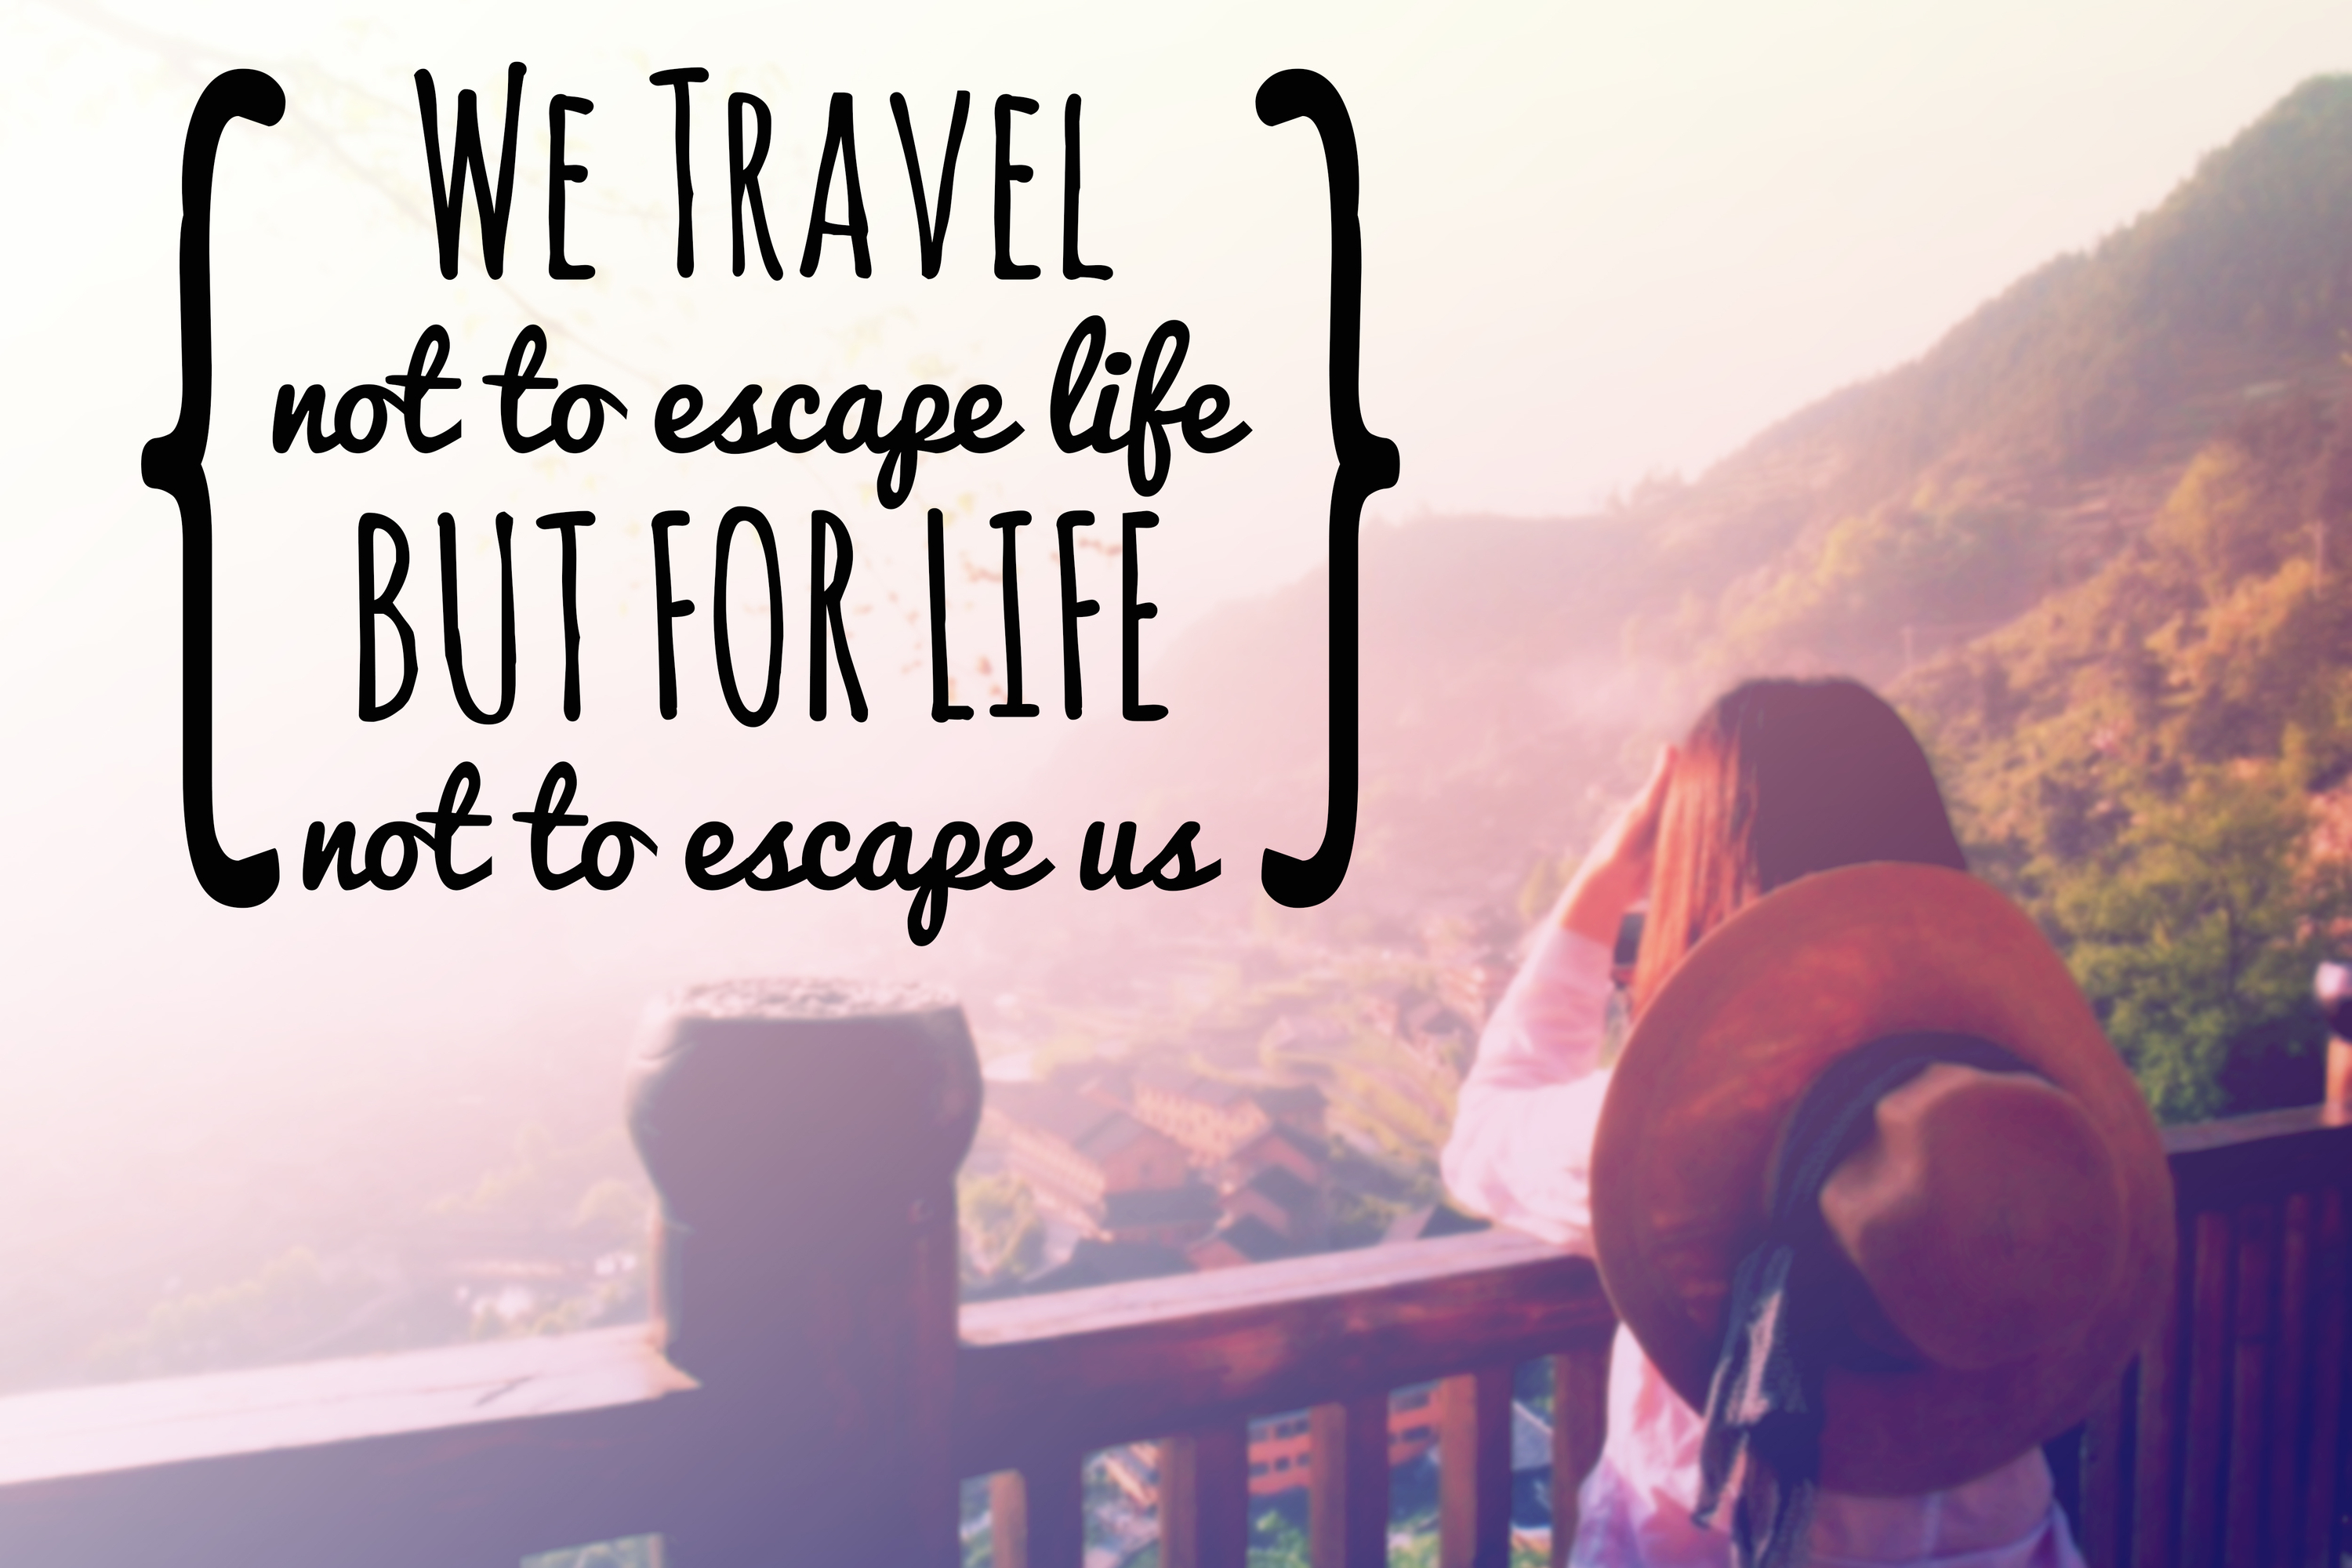 Everyone loves a cheesy quote for their traveling posts but these will fulfill your travel dreams